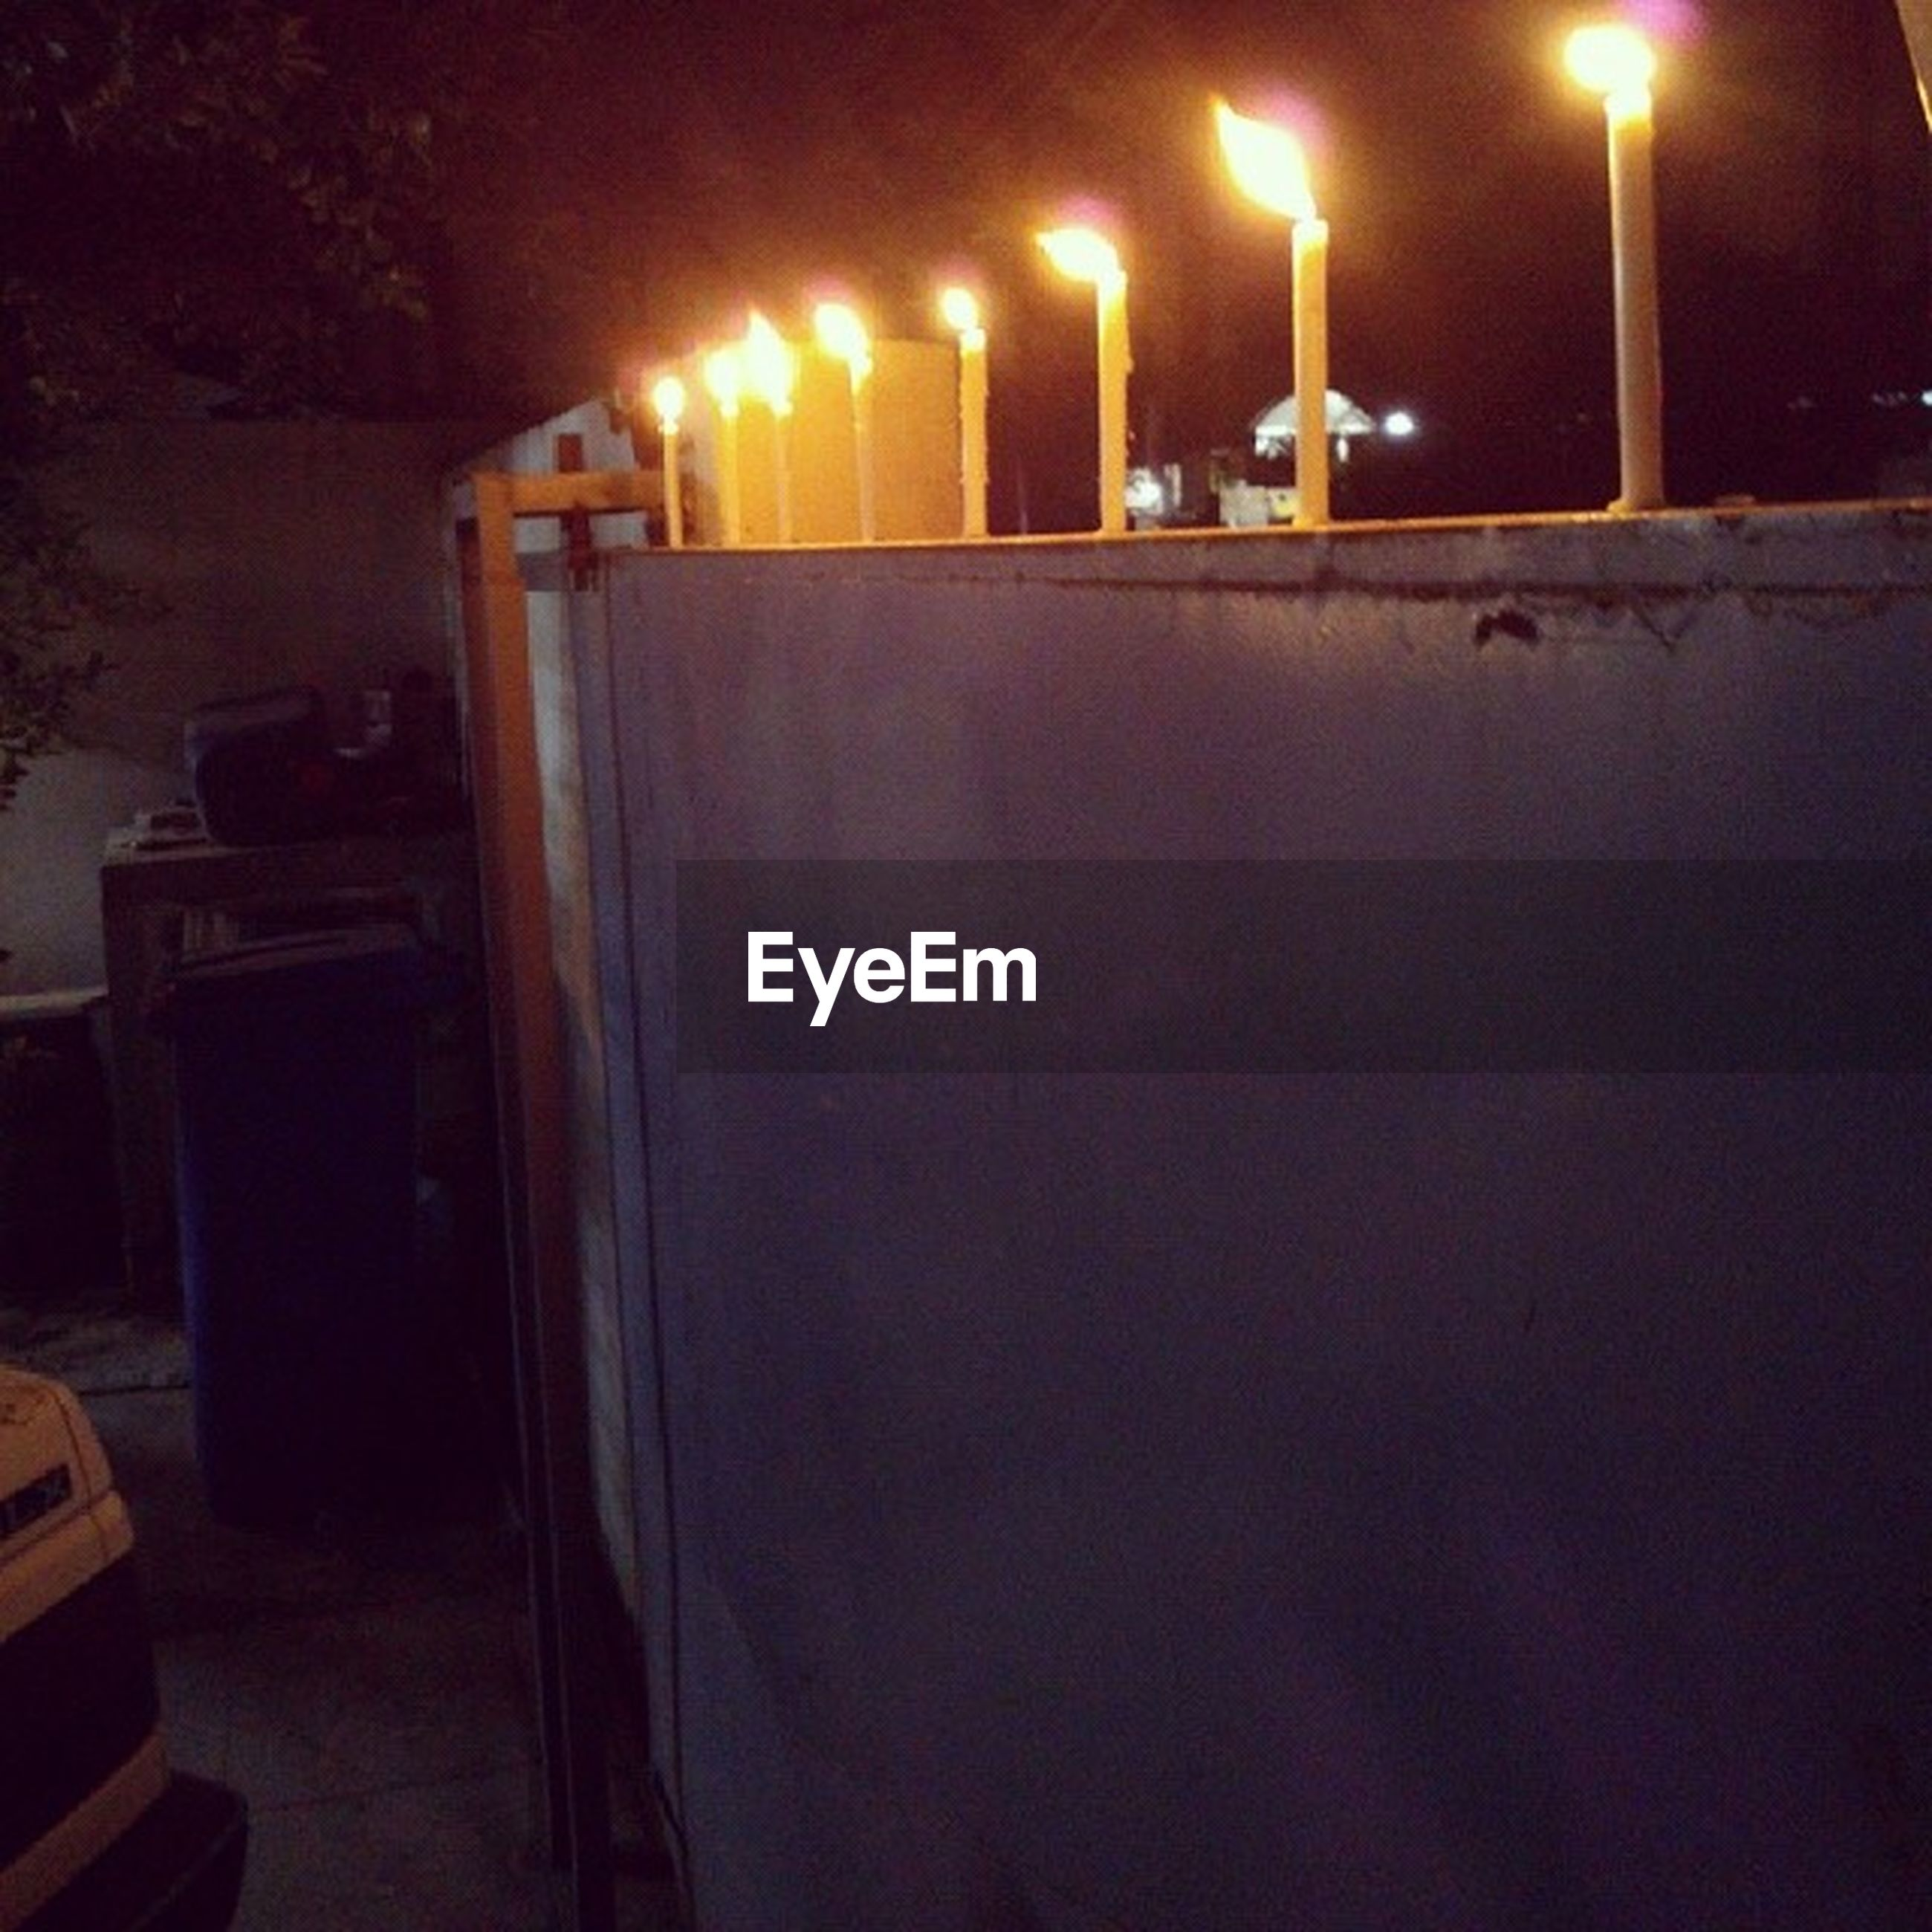 illuminated, night, indoors, lighting equipment, glowing, lit, electricity, light - natural phenomenon, candle, burning, dark, electric light, wall - building feature, flame, heat - temperature, no people, fire - natural phenomenon, darkroom, wood - material, close-up